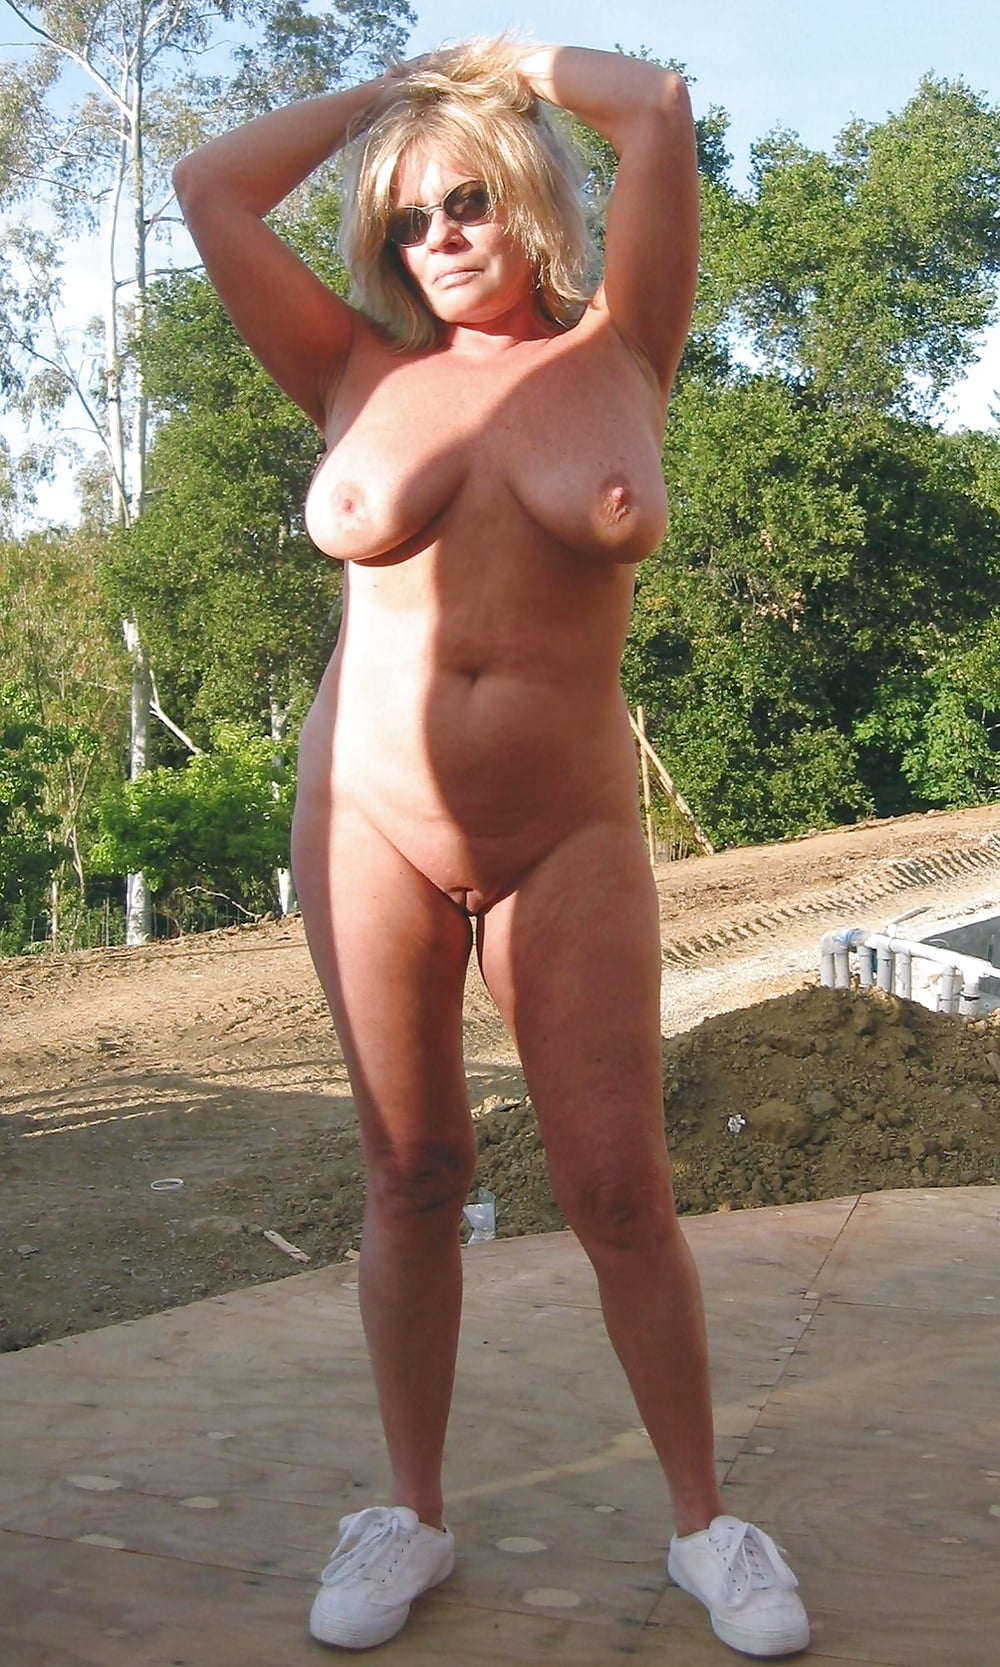 Stars and chubby blonde nude in public srilankan buts explicit